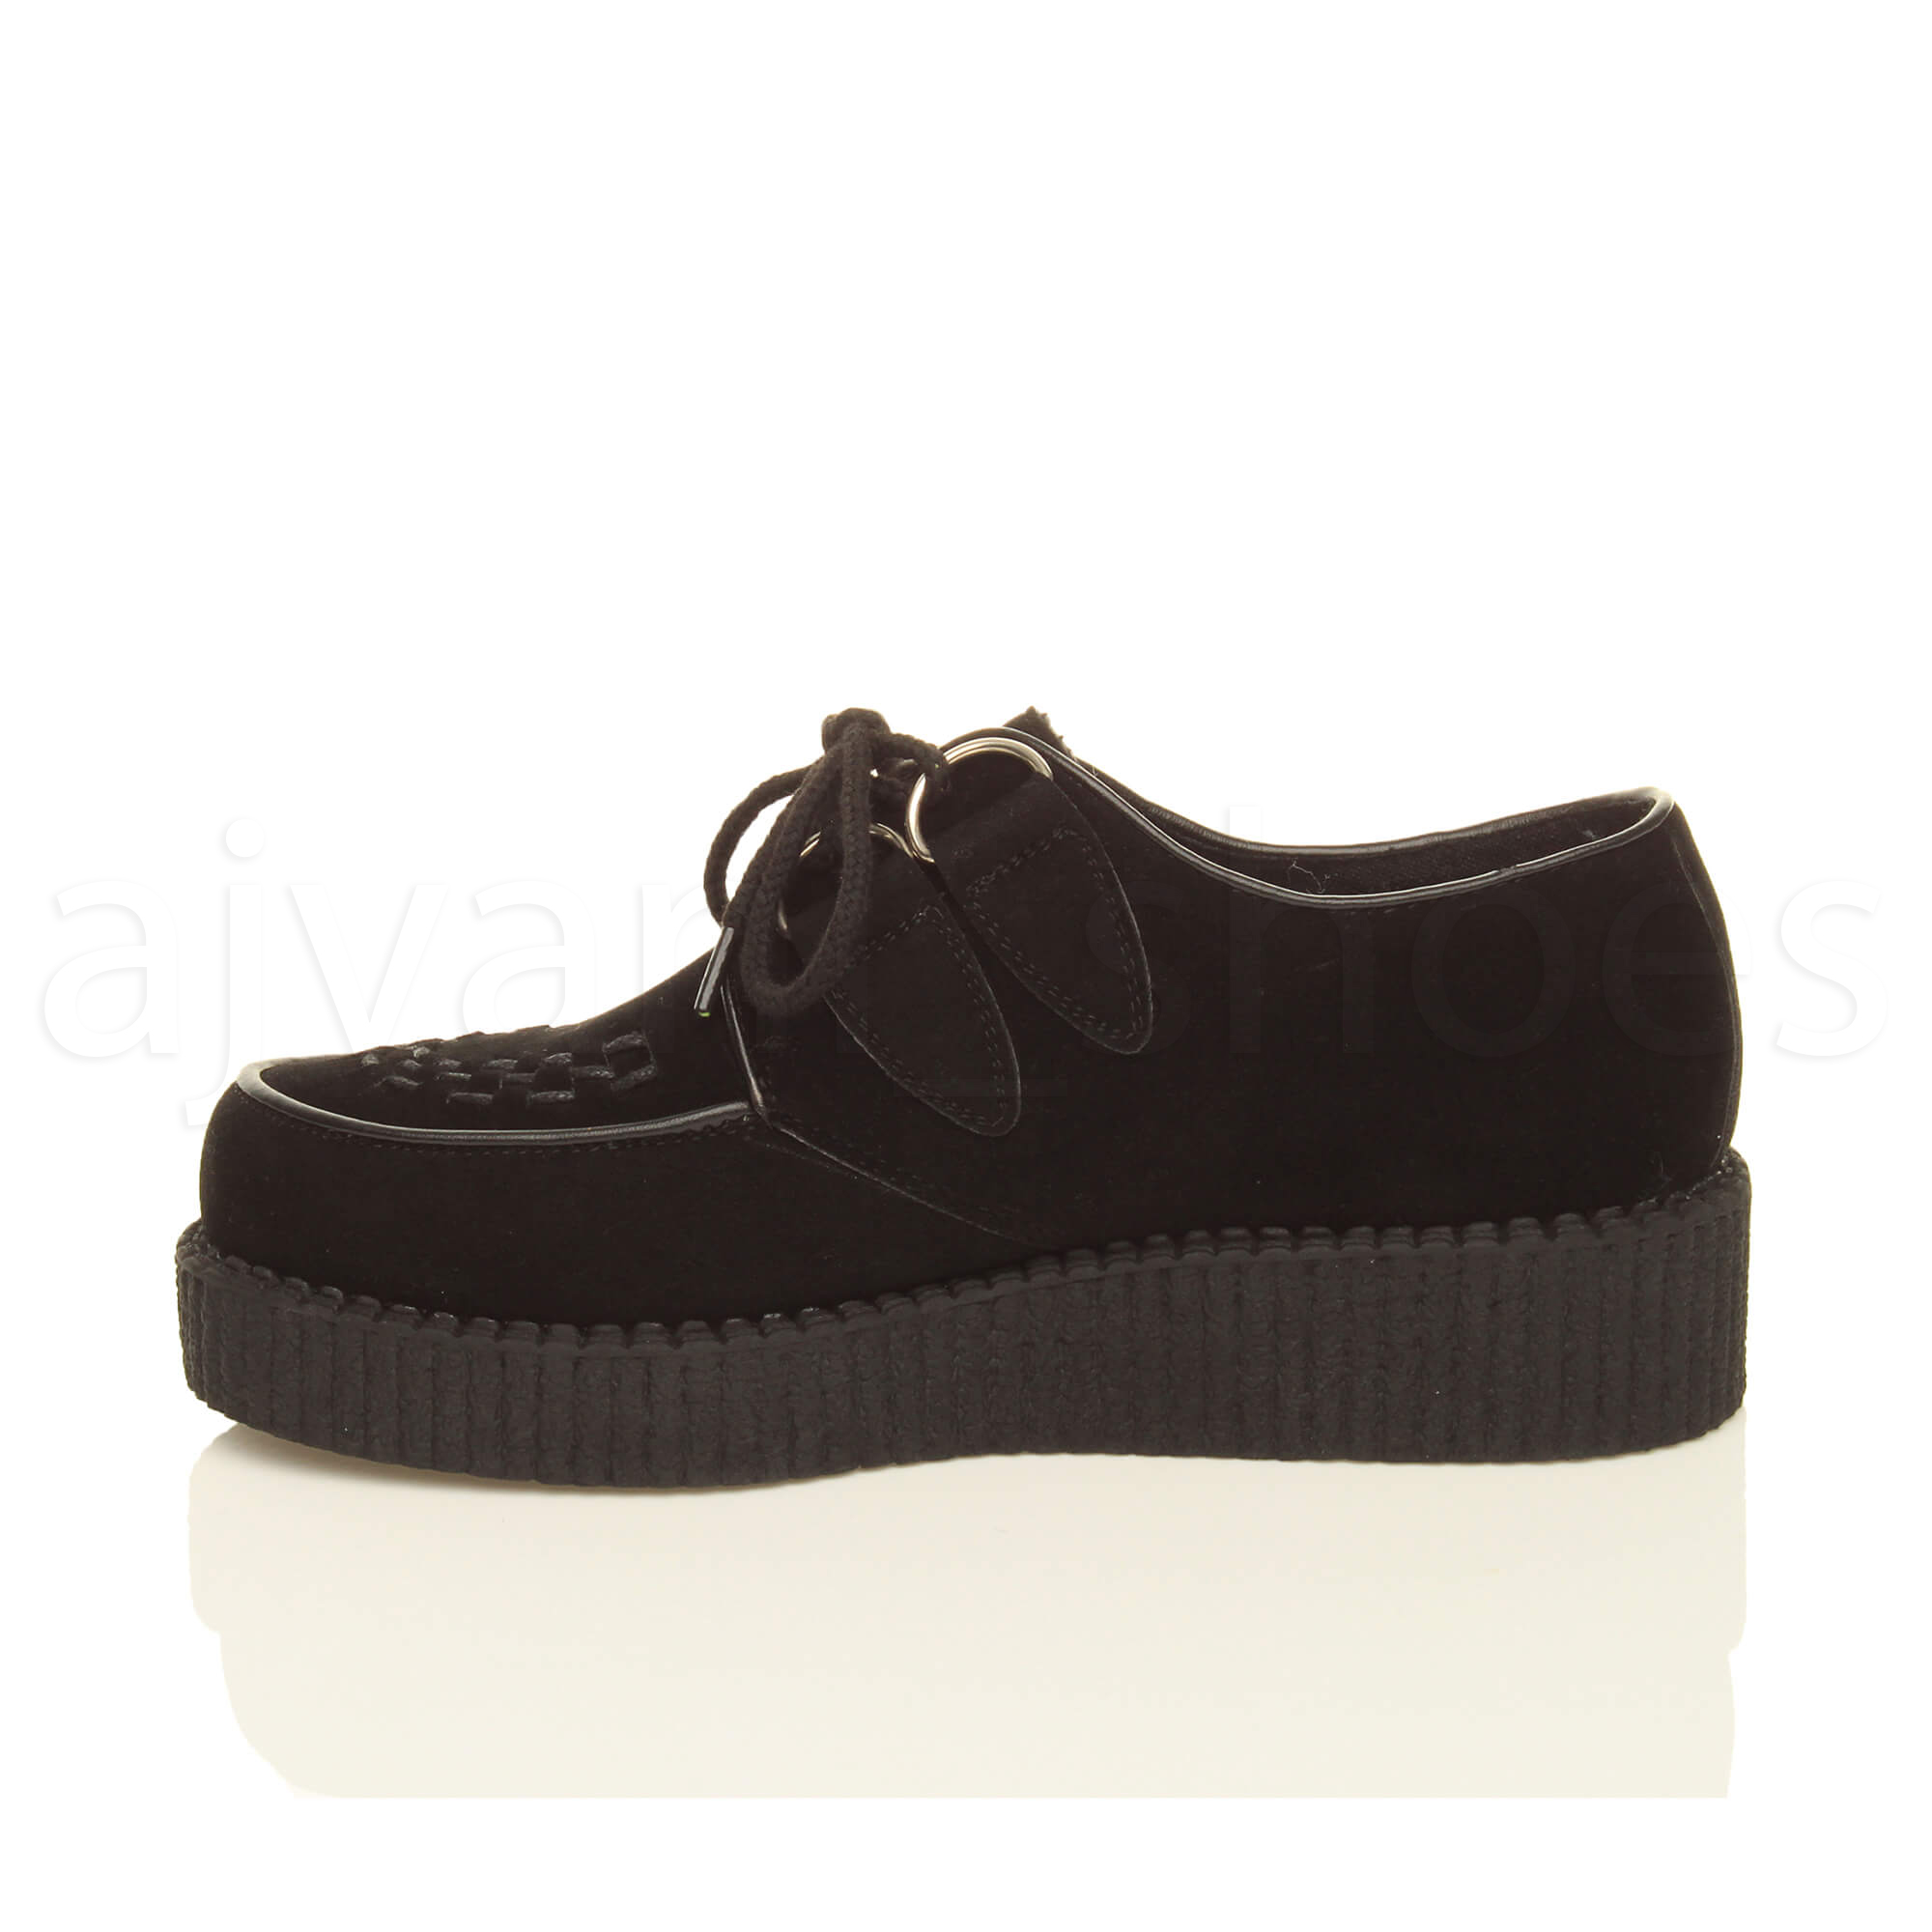 MENS-PLATFORM-WEDGE-LACE-UP-GOTH-PUNK-BROTHEL-CREEPERS-BEETLE-CRUSHERS-SHOES thumbnail 11